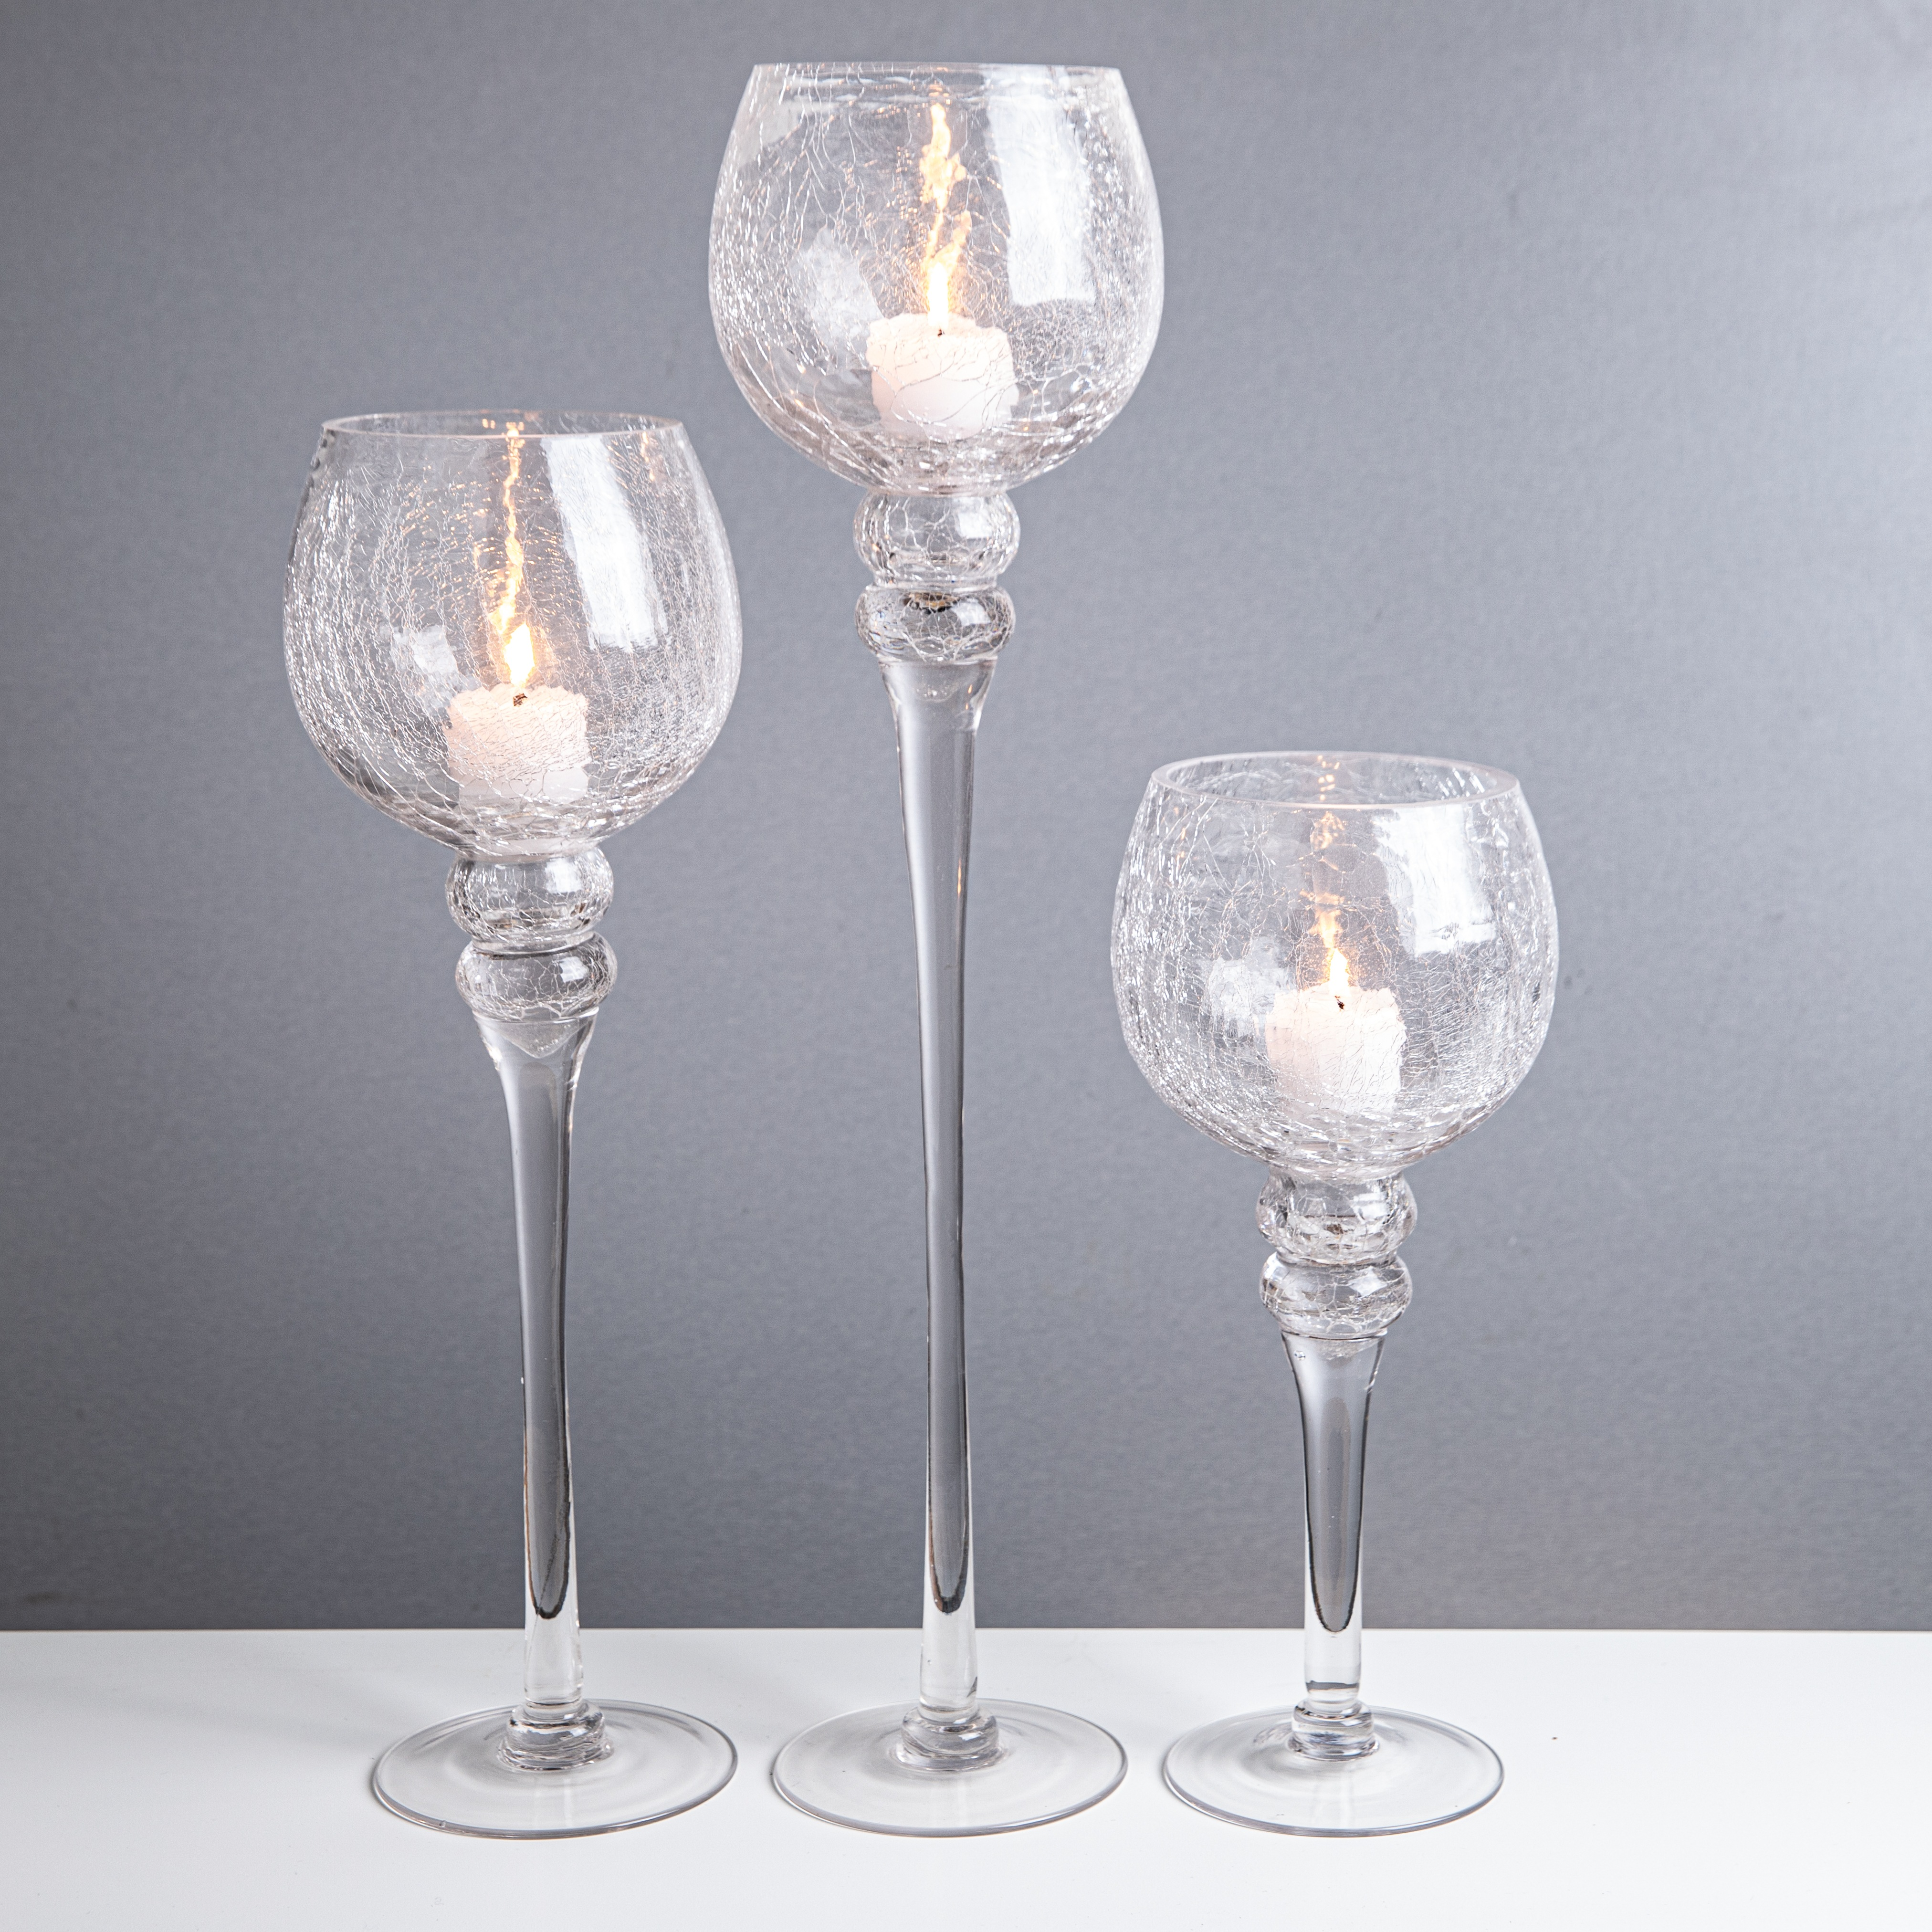 3 glass stemmed candleholders with a candle in each - weddings centrepiece